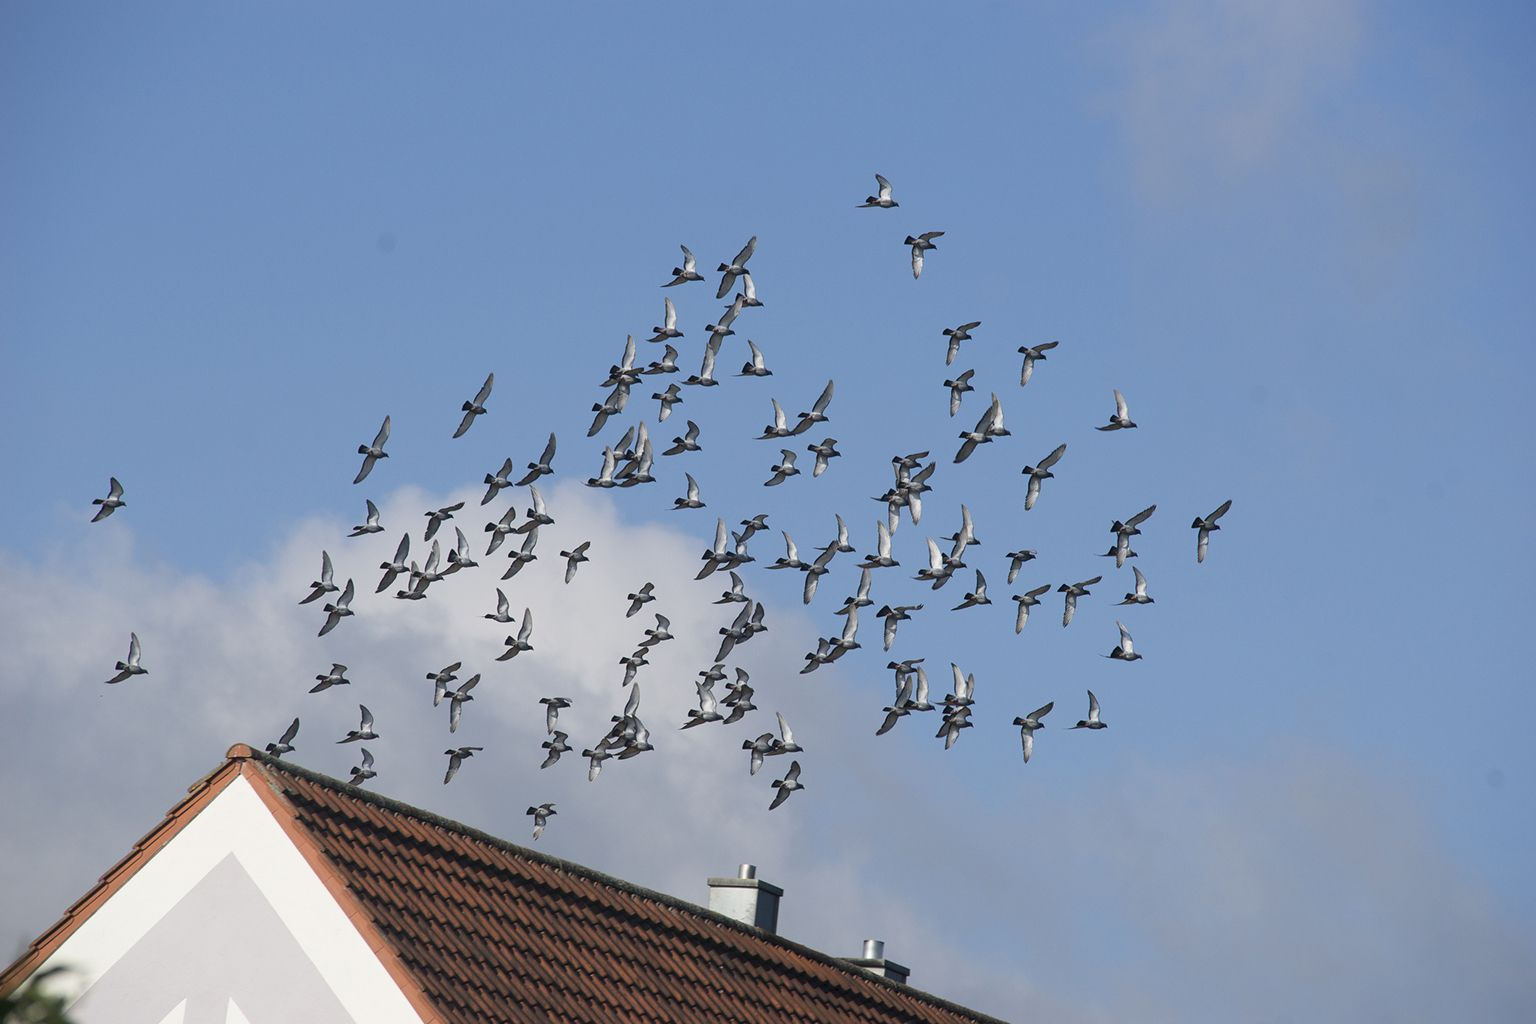 Flying racing pigeon on their daily training flight on a house roof..